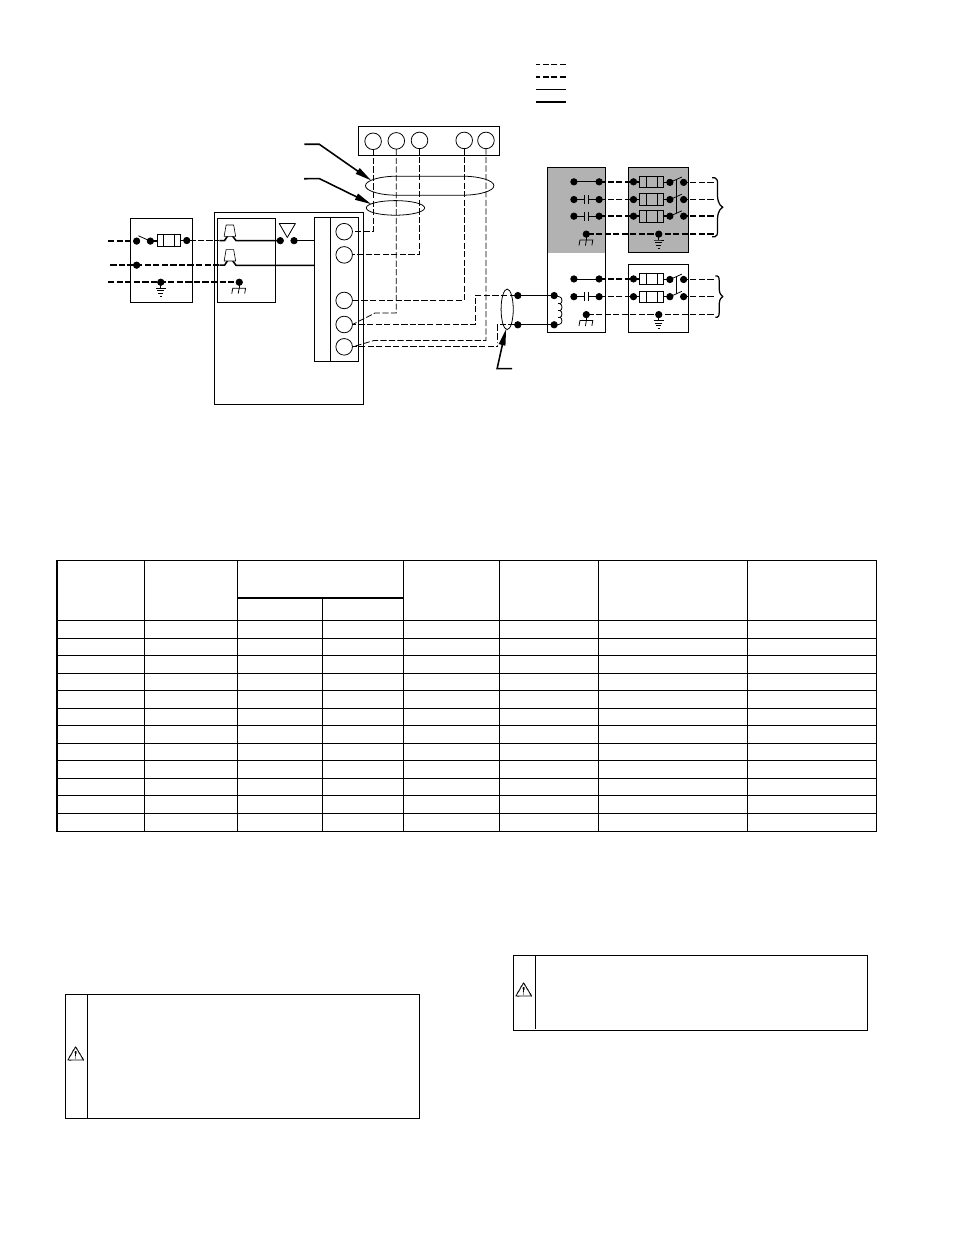 Lg 395cav User Manual Page 8 16 Valve Switch Box Wire Diagram